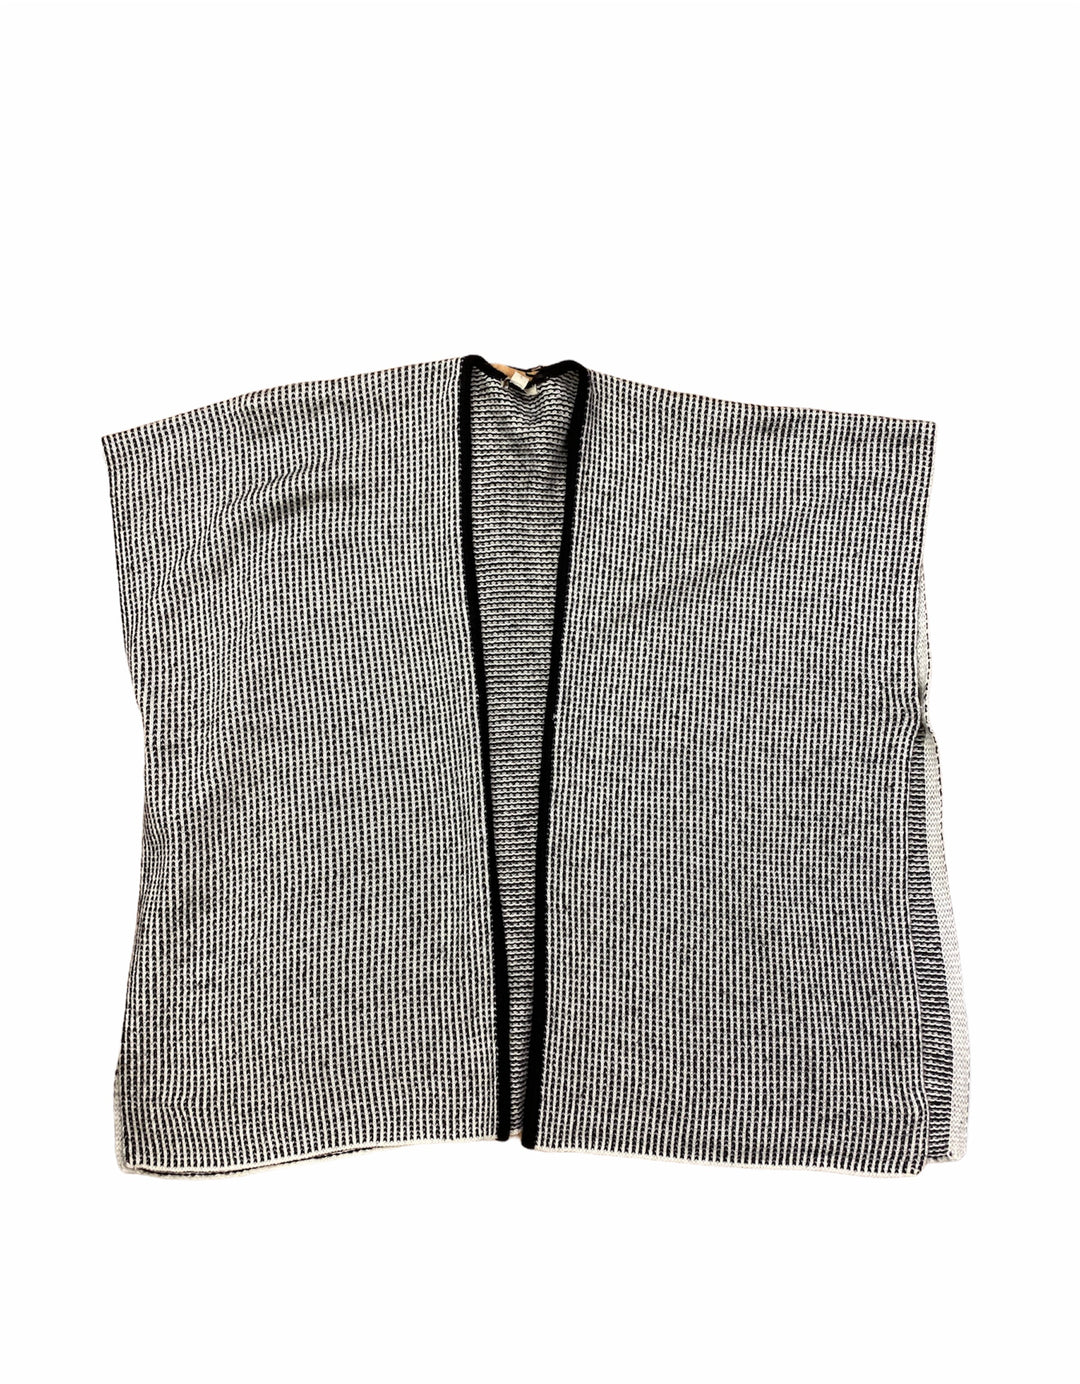 Primary Photo - BRAND: LOFT <BR>STYLE: SWEATER CARDIGAN HEAVYWEIGHT <BR>COLOR: BLACK WHITE <BR>SIZE: XS <BR>SKU: 223-22393-5110